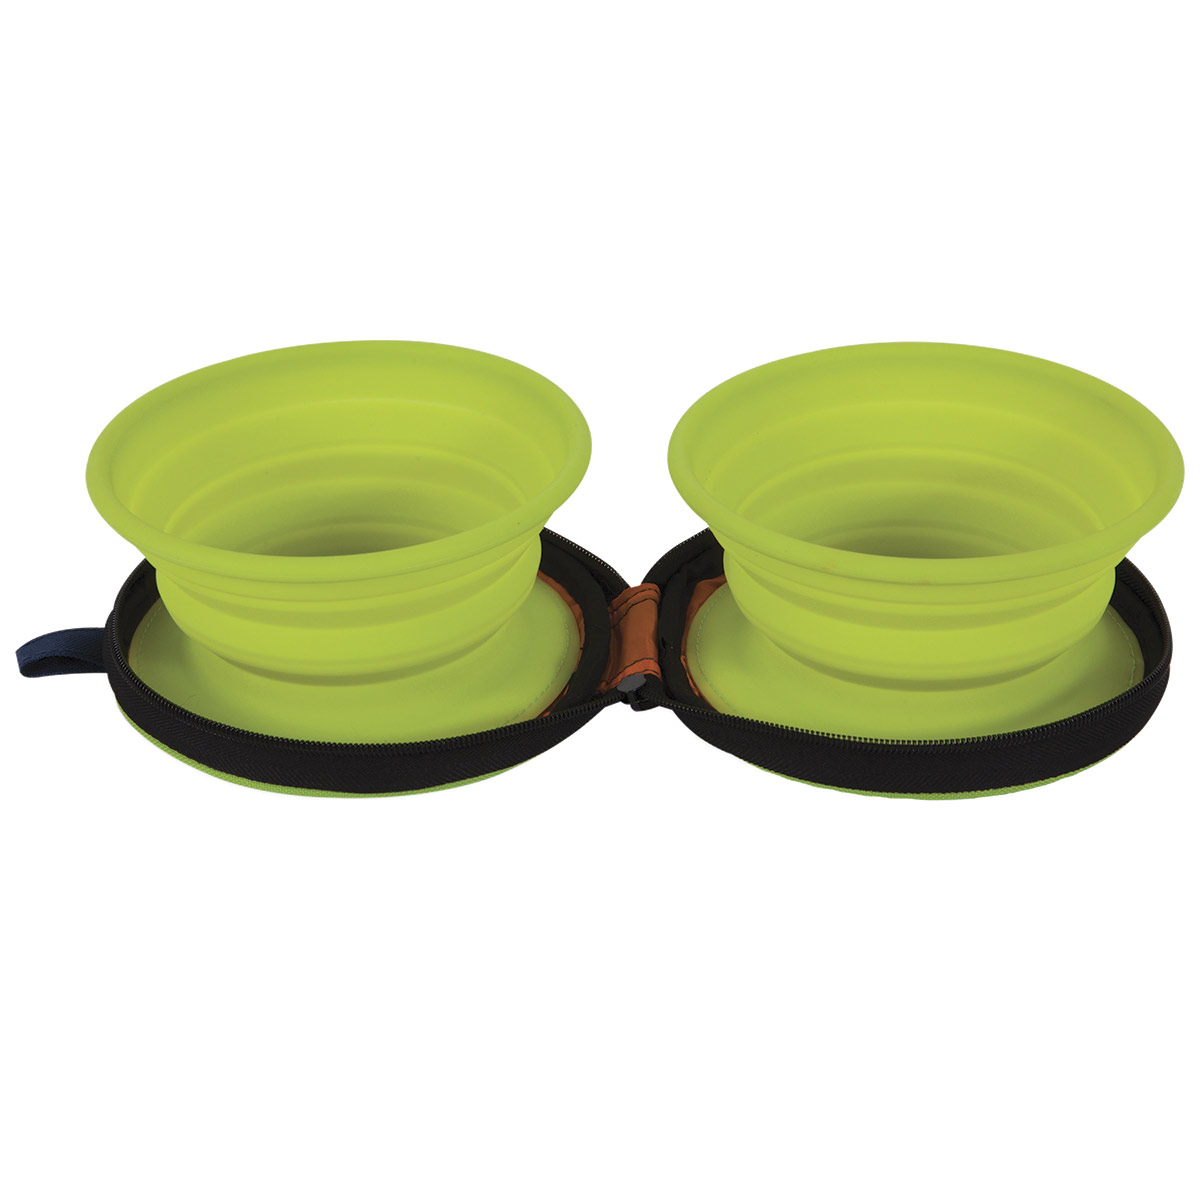 Petmate Silicone Travel Bowl Duo - Holds 3 Cups